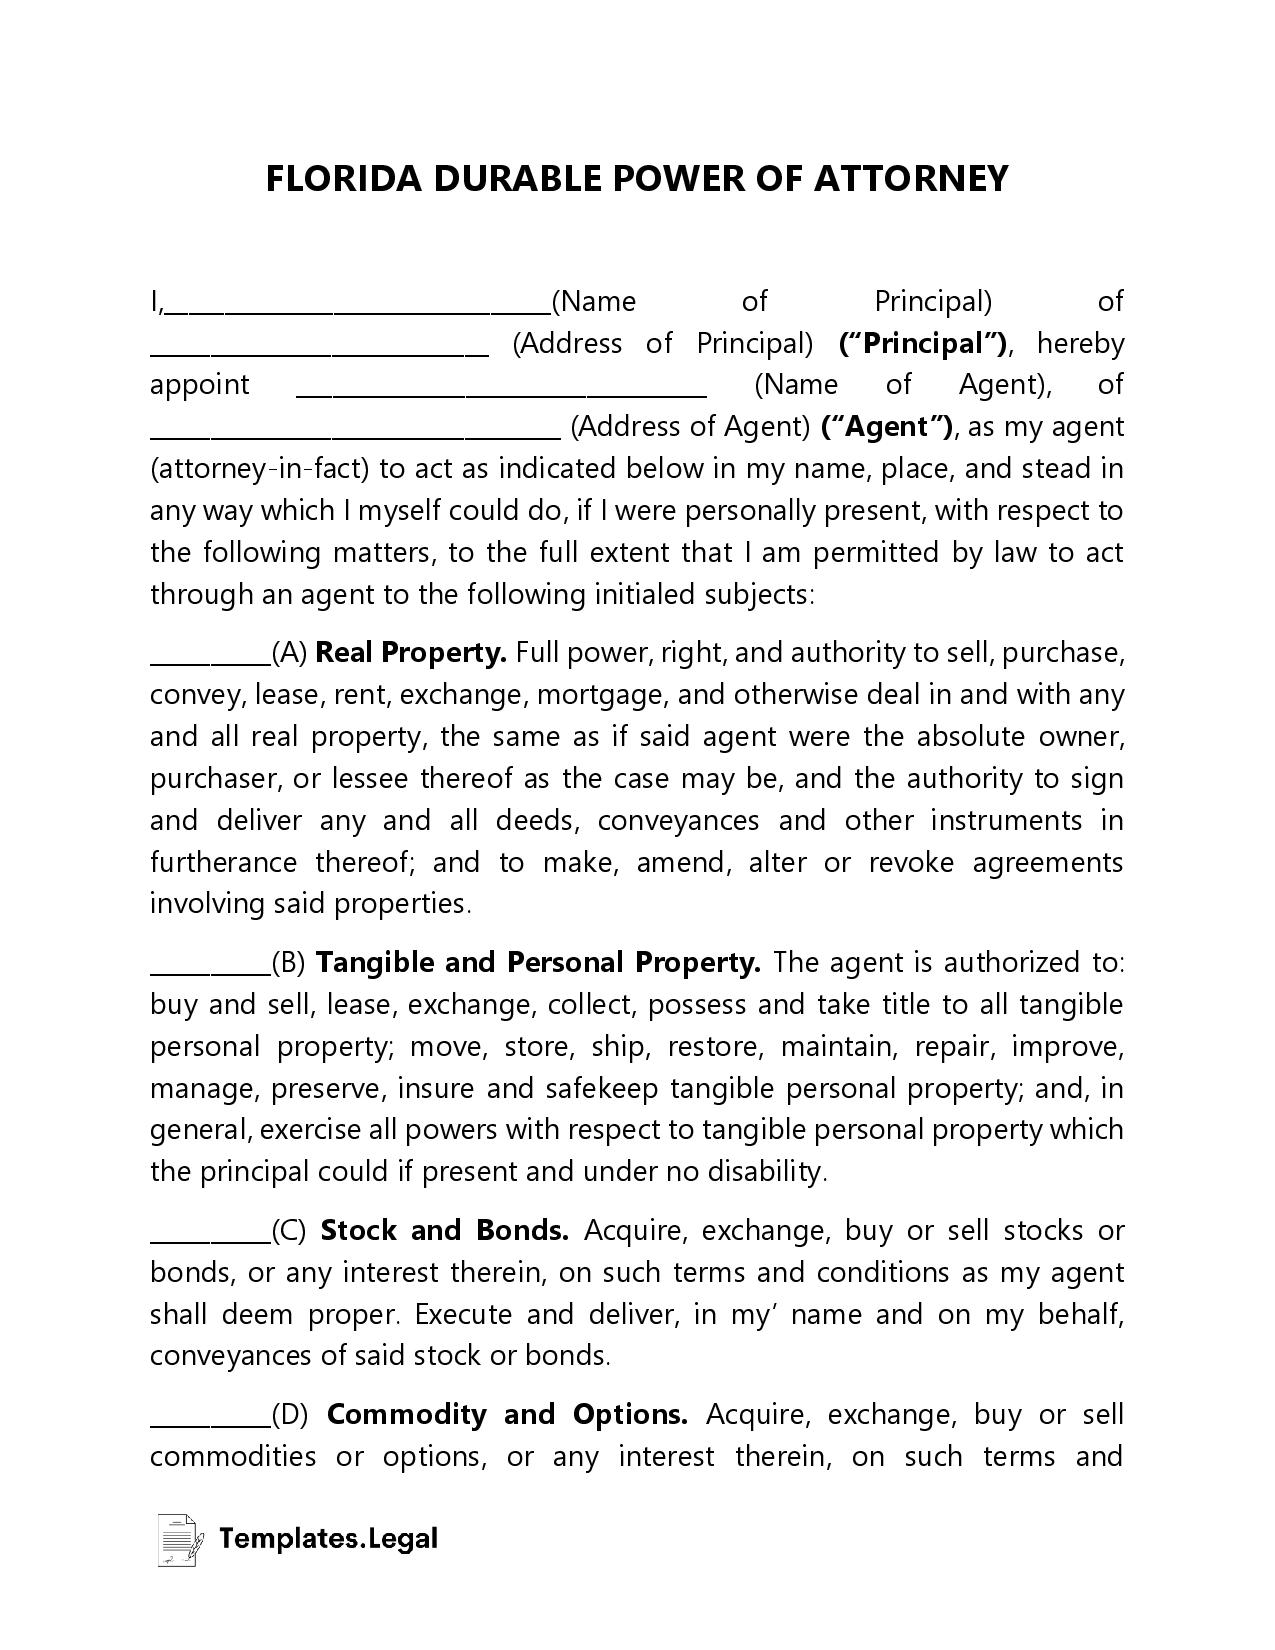 Florida Durable Power of Attorney - Templates.Legal